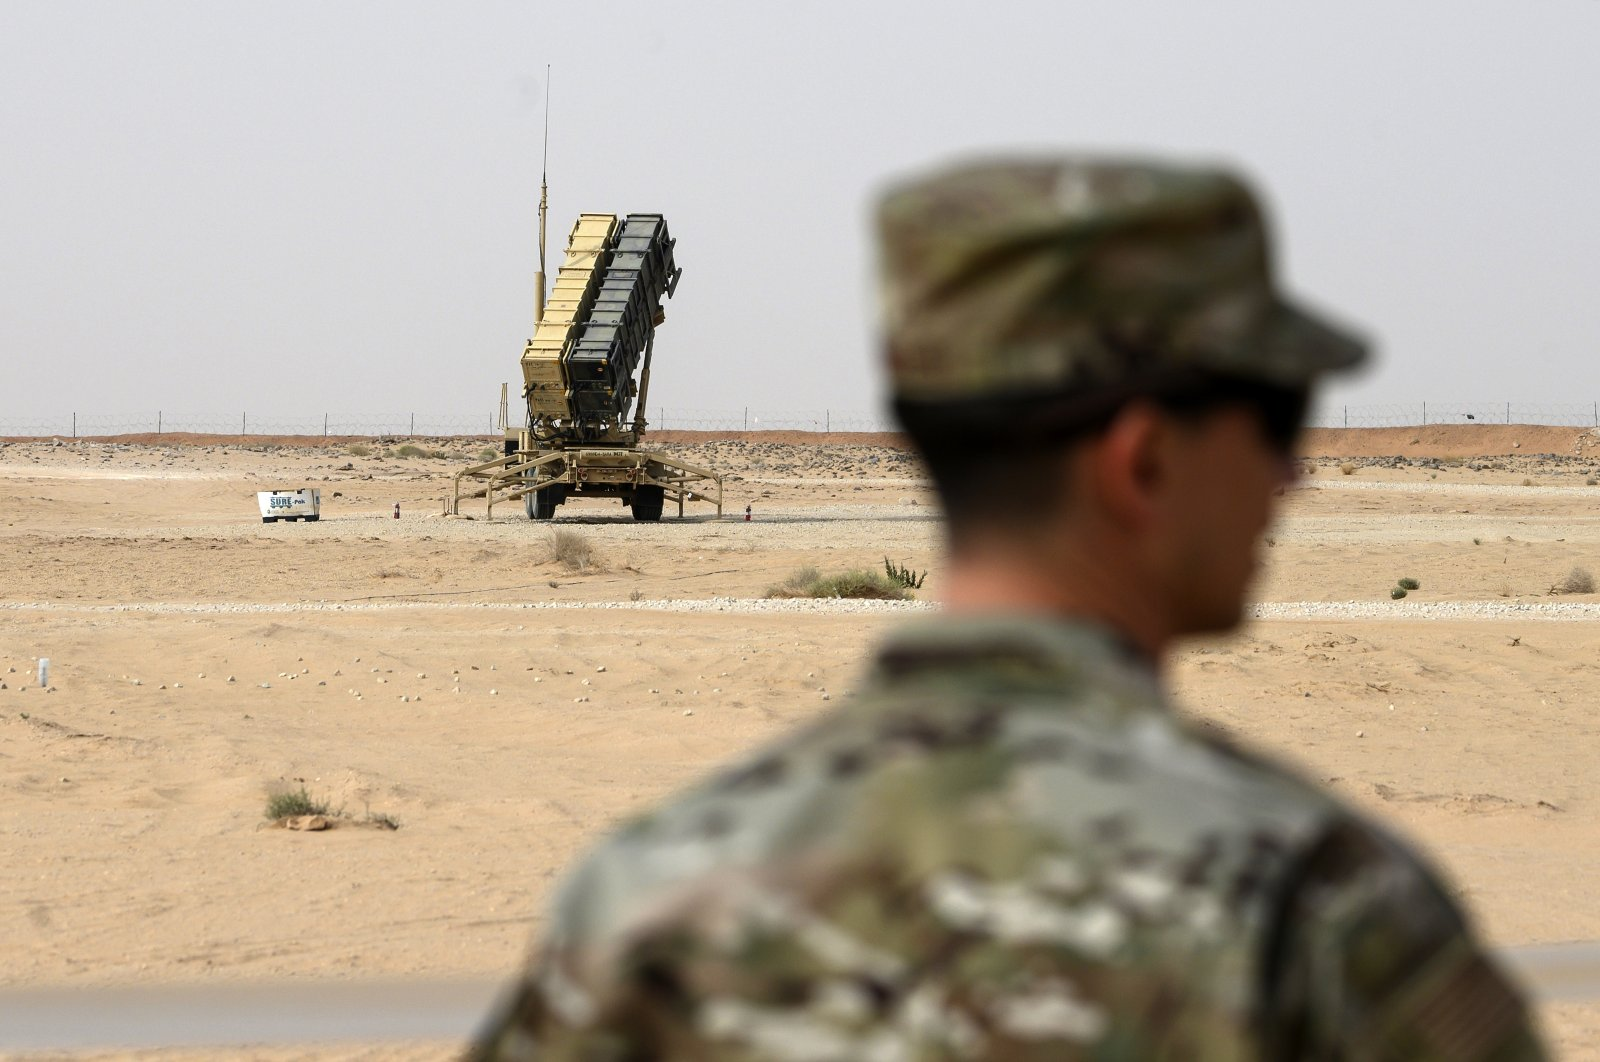 A member of the U.S. Air Force stands near a Patriot missile battery at the Prince Sultan Air Base in al-Kharj, Saudi Arabia, Feb. 20, 2020. (AP Photo)